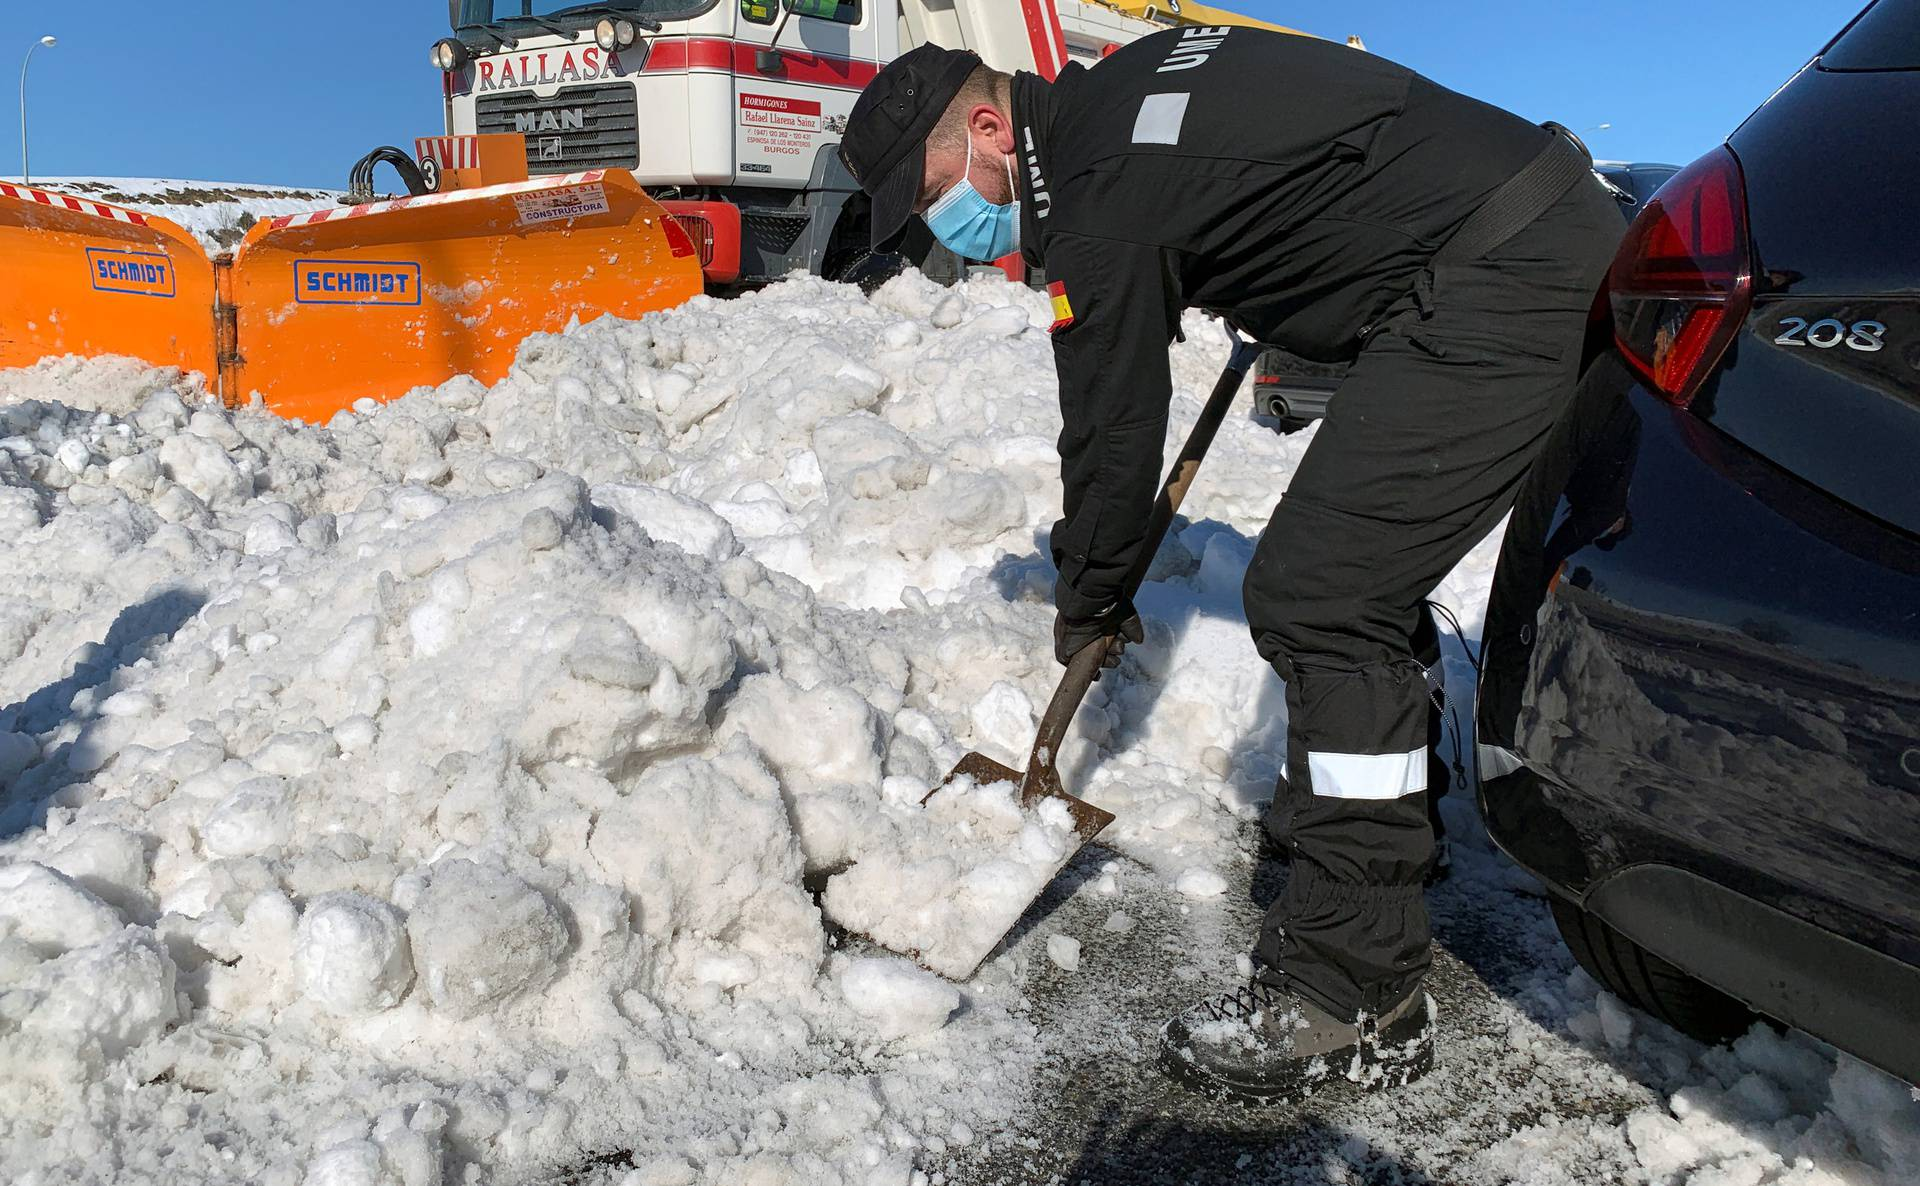 A member of Spain's military unit (UME) shovels snow next to cars accumulated on M-40 highway after heavy snowfall in Madrid